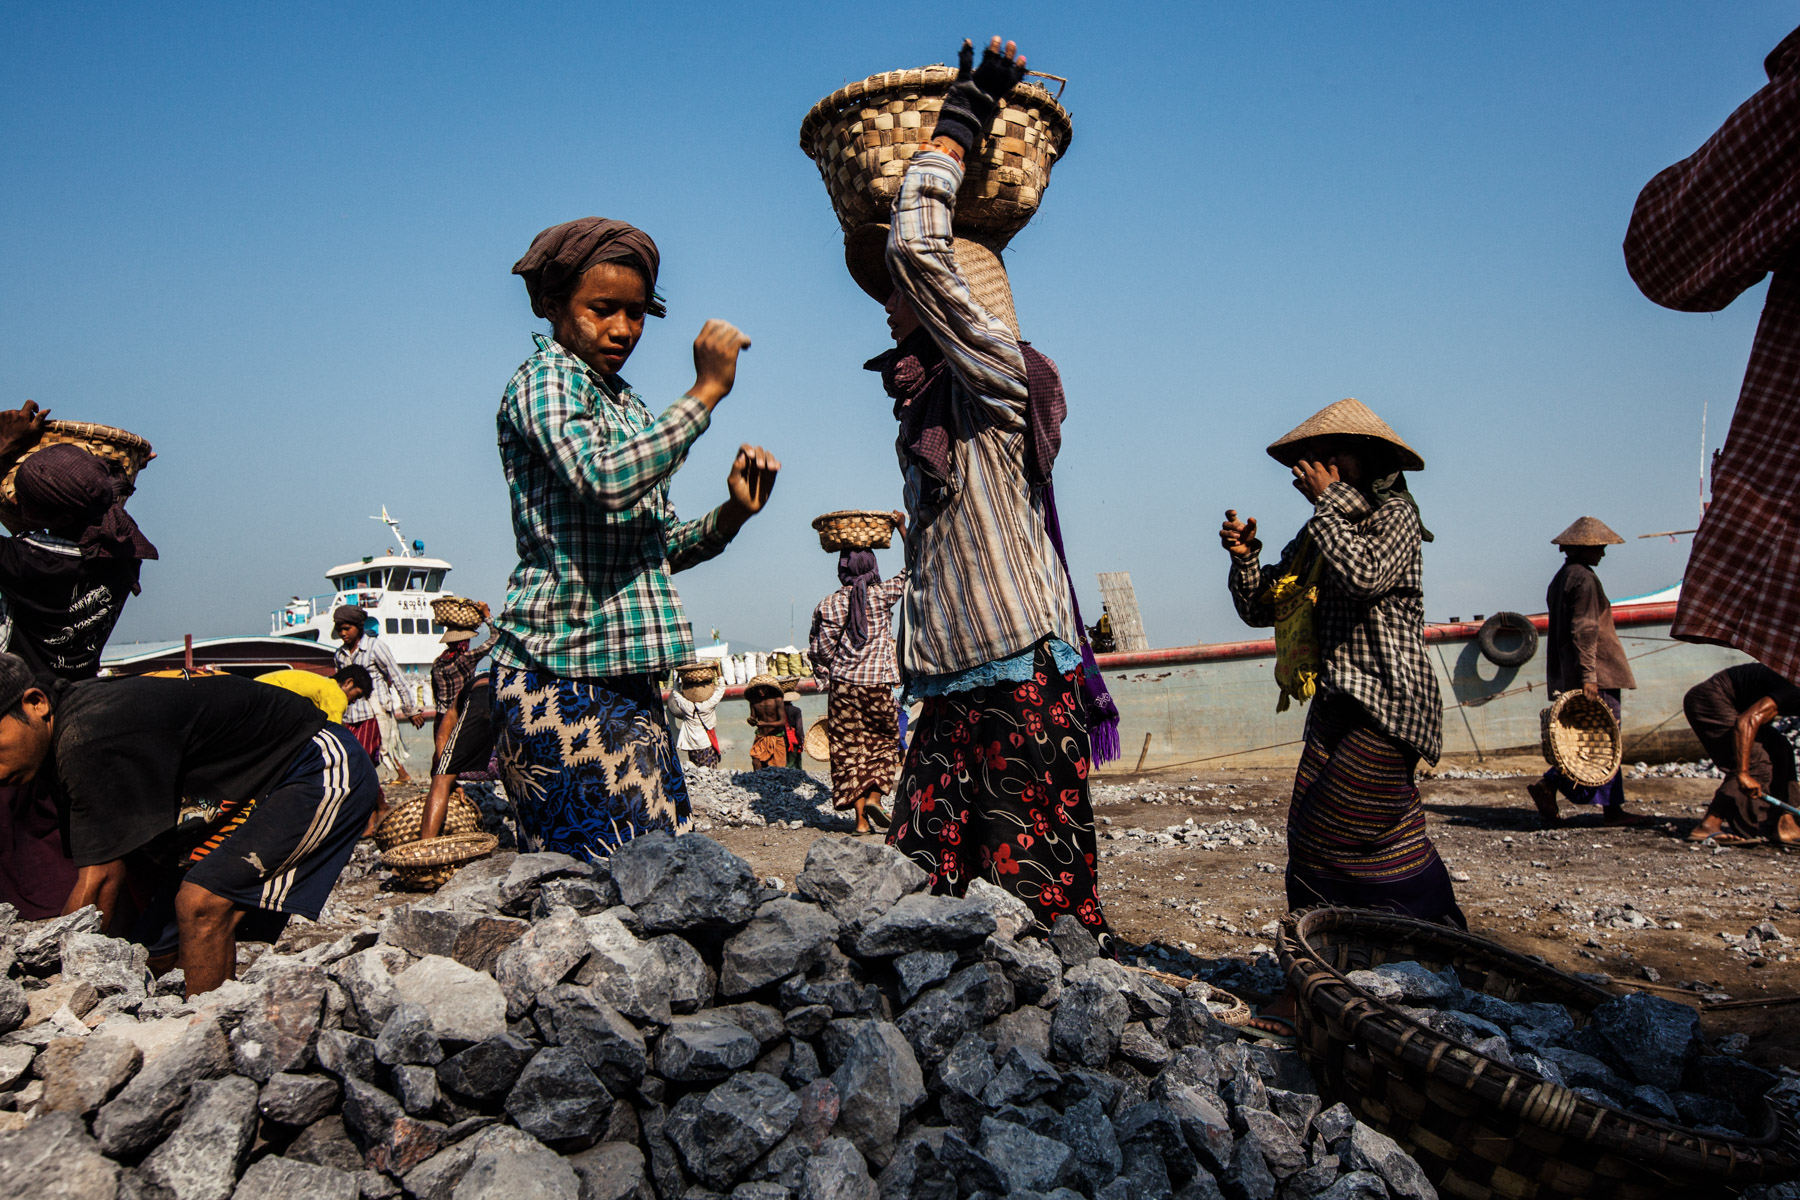 Burmese laborers load stones onto a large barge awaiting transport to construction sites downriver from Mandalay.